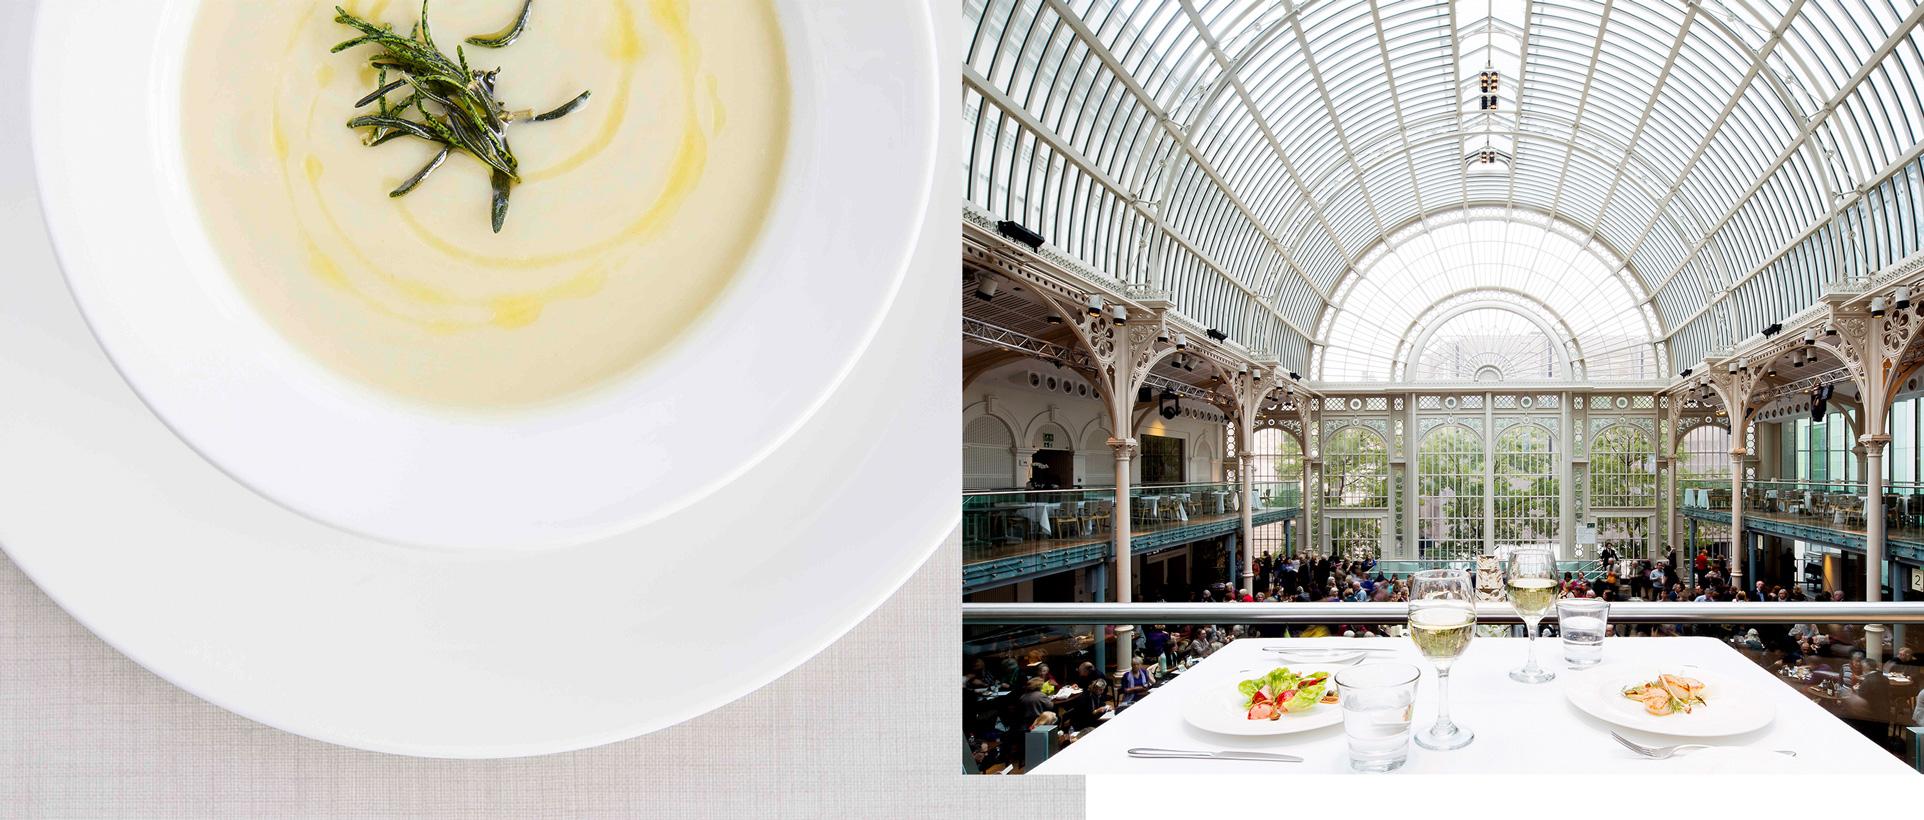 Delicious food and drink served in the Royal Opera House restaurants.